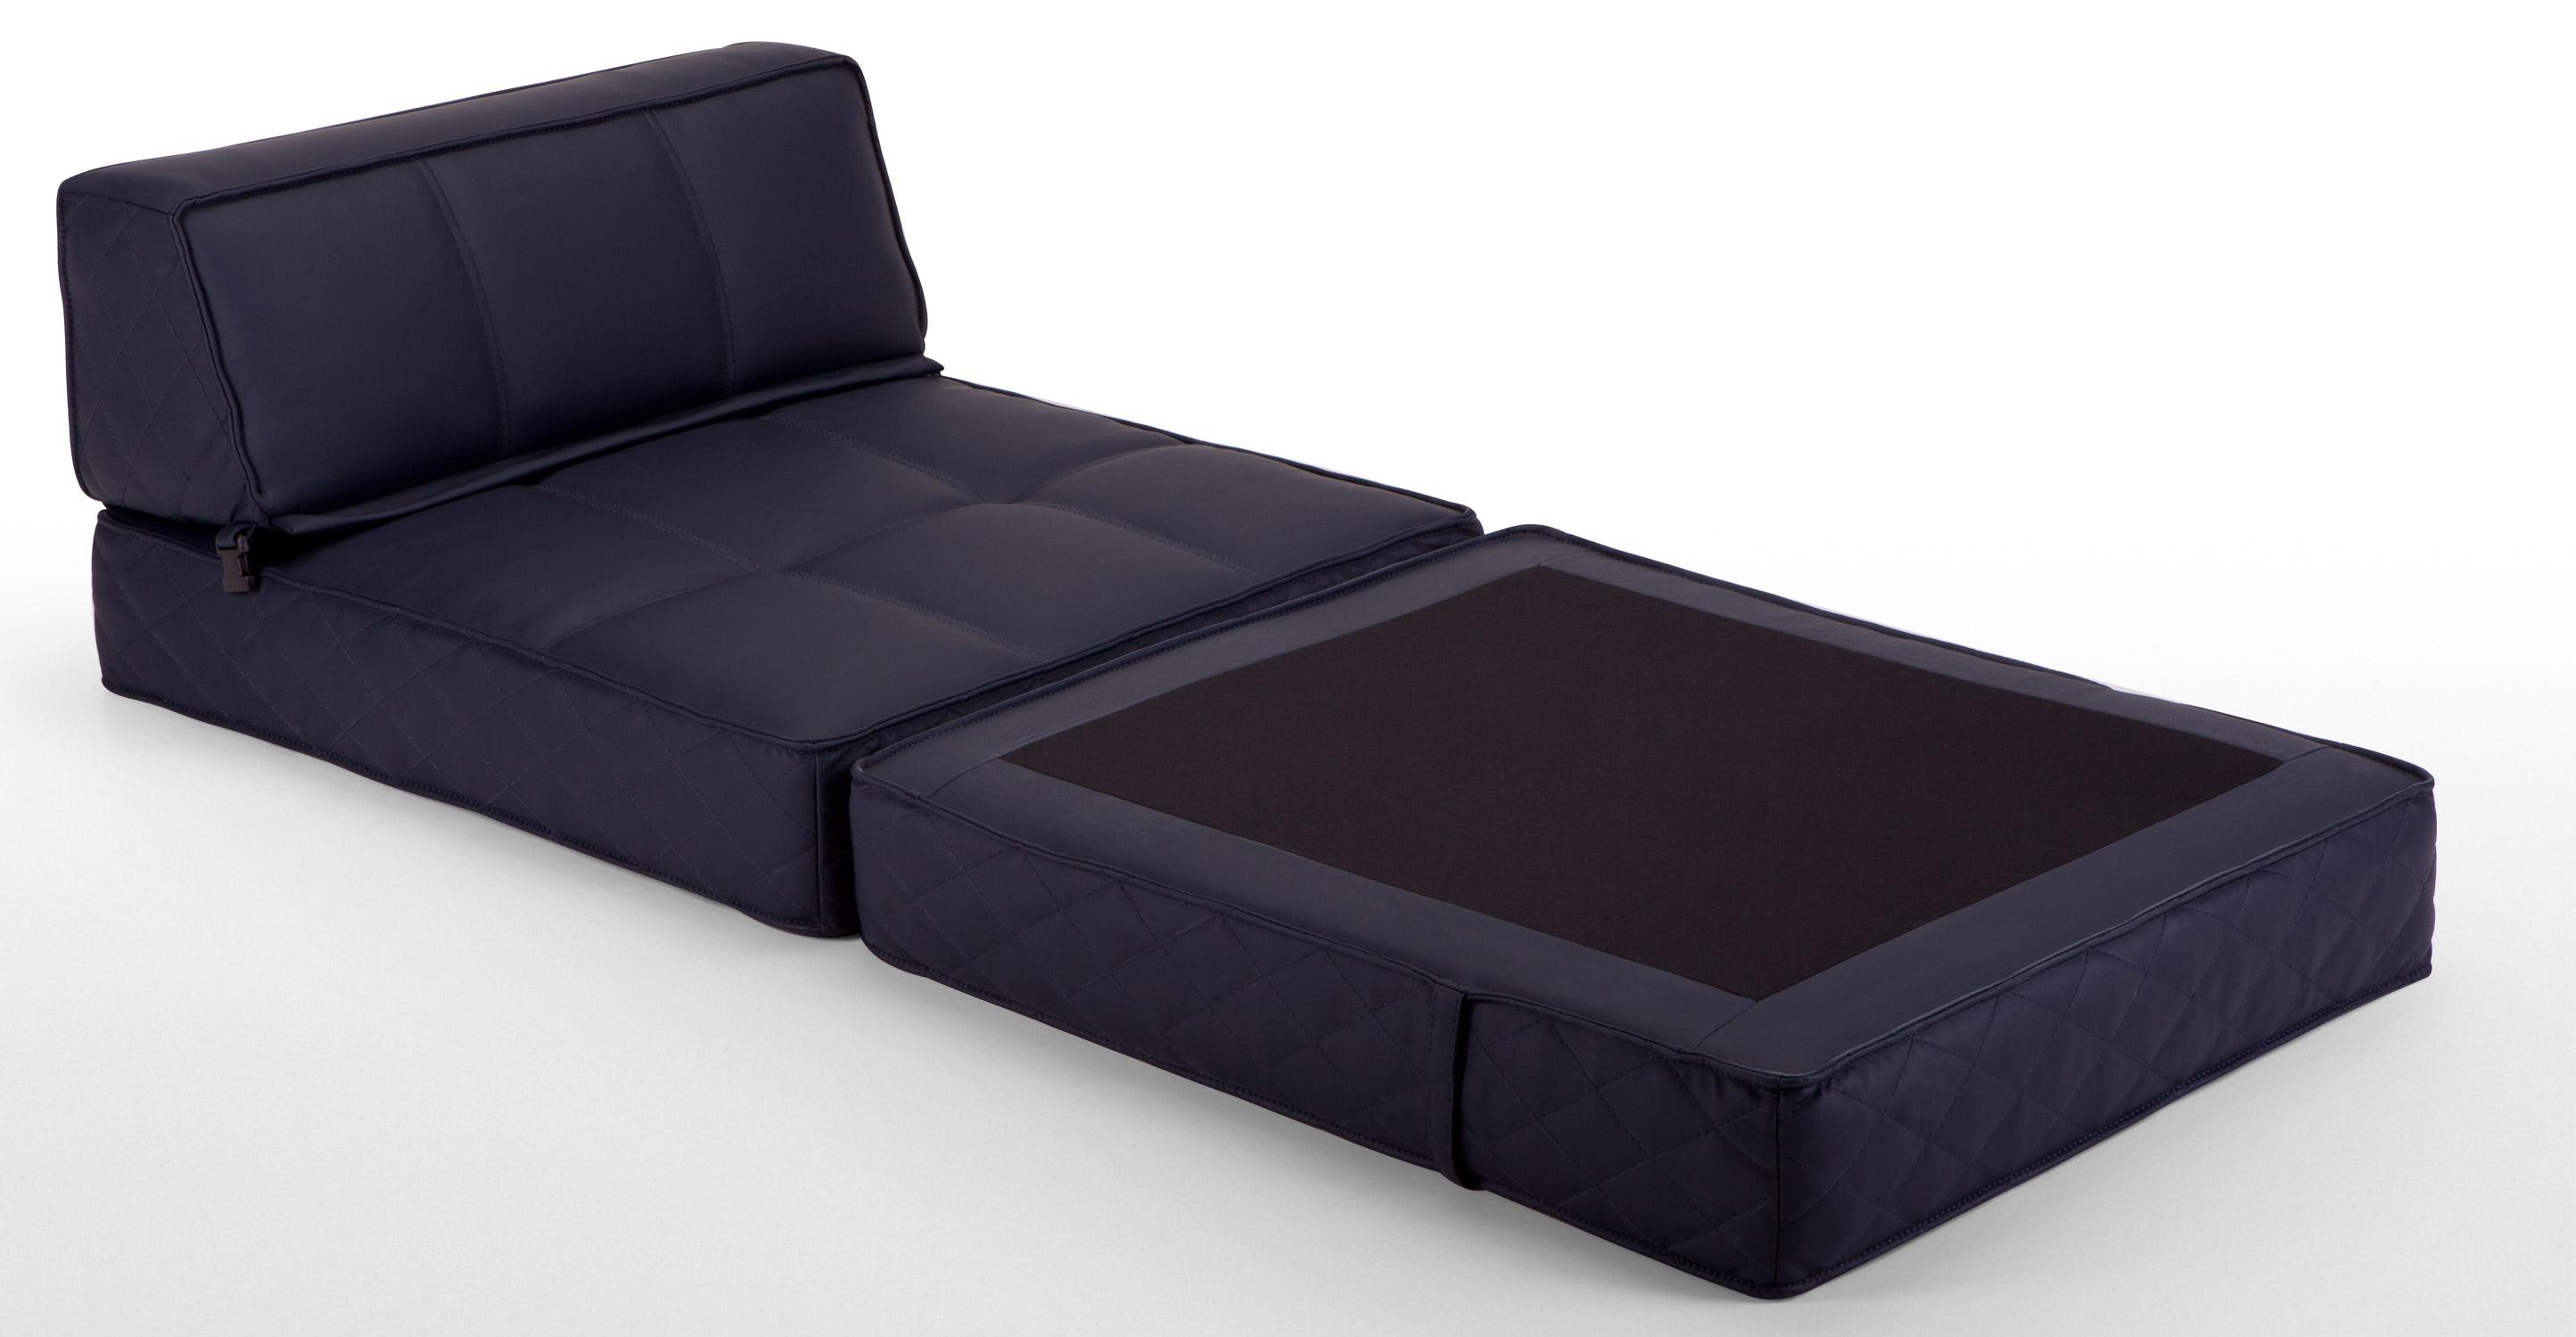 Fold Up Sofa Bed With Regard To Fold Up Sofa Chairs (Image 12 of 22)